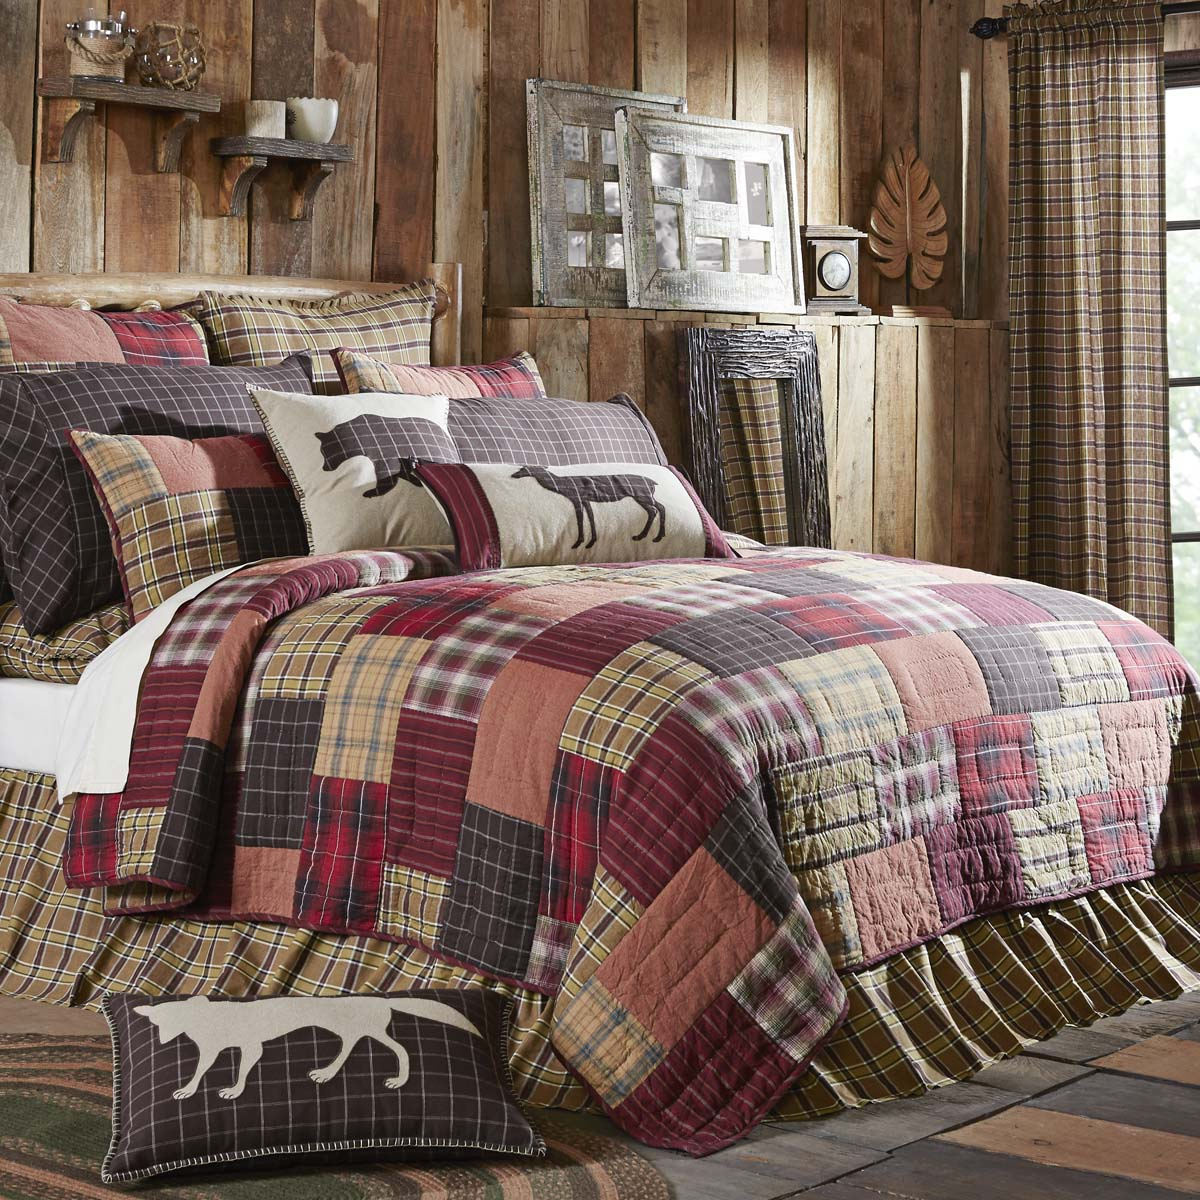 Crimson Red Rustic & Lodge Bedding Wyatt Cotton Pre-Washed Patchwork Chambray Queen Quilt